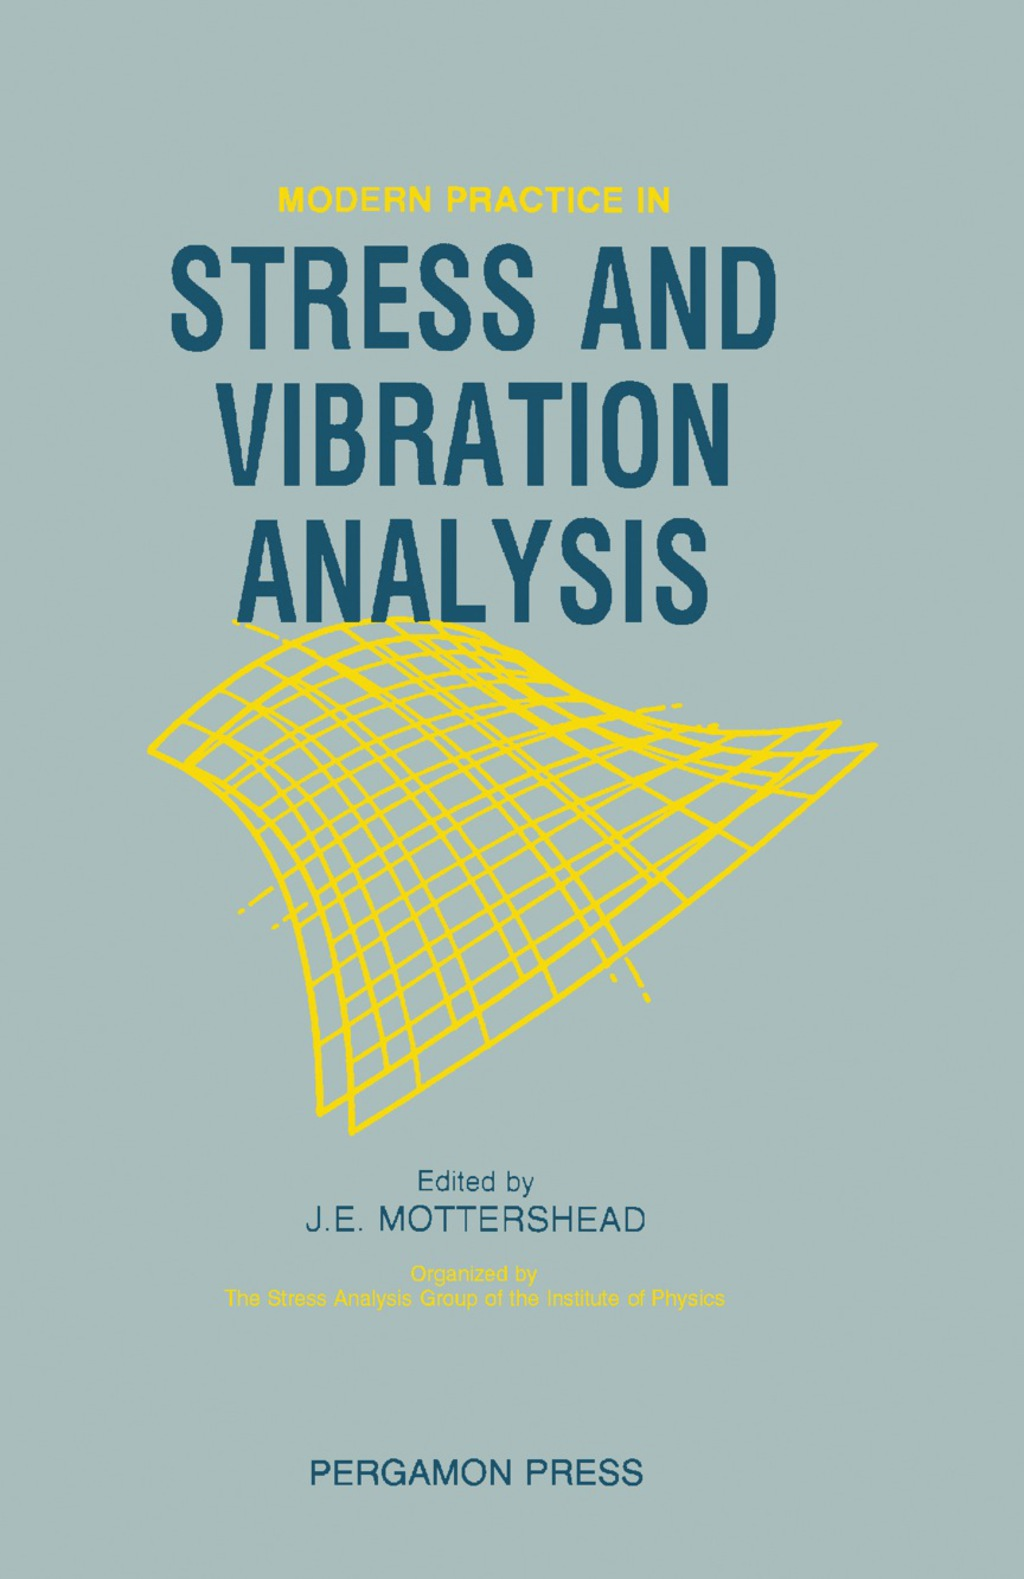 Modern Practice in Stress and Vibration Analysis (ebook) eBooks